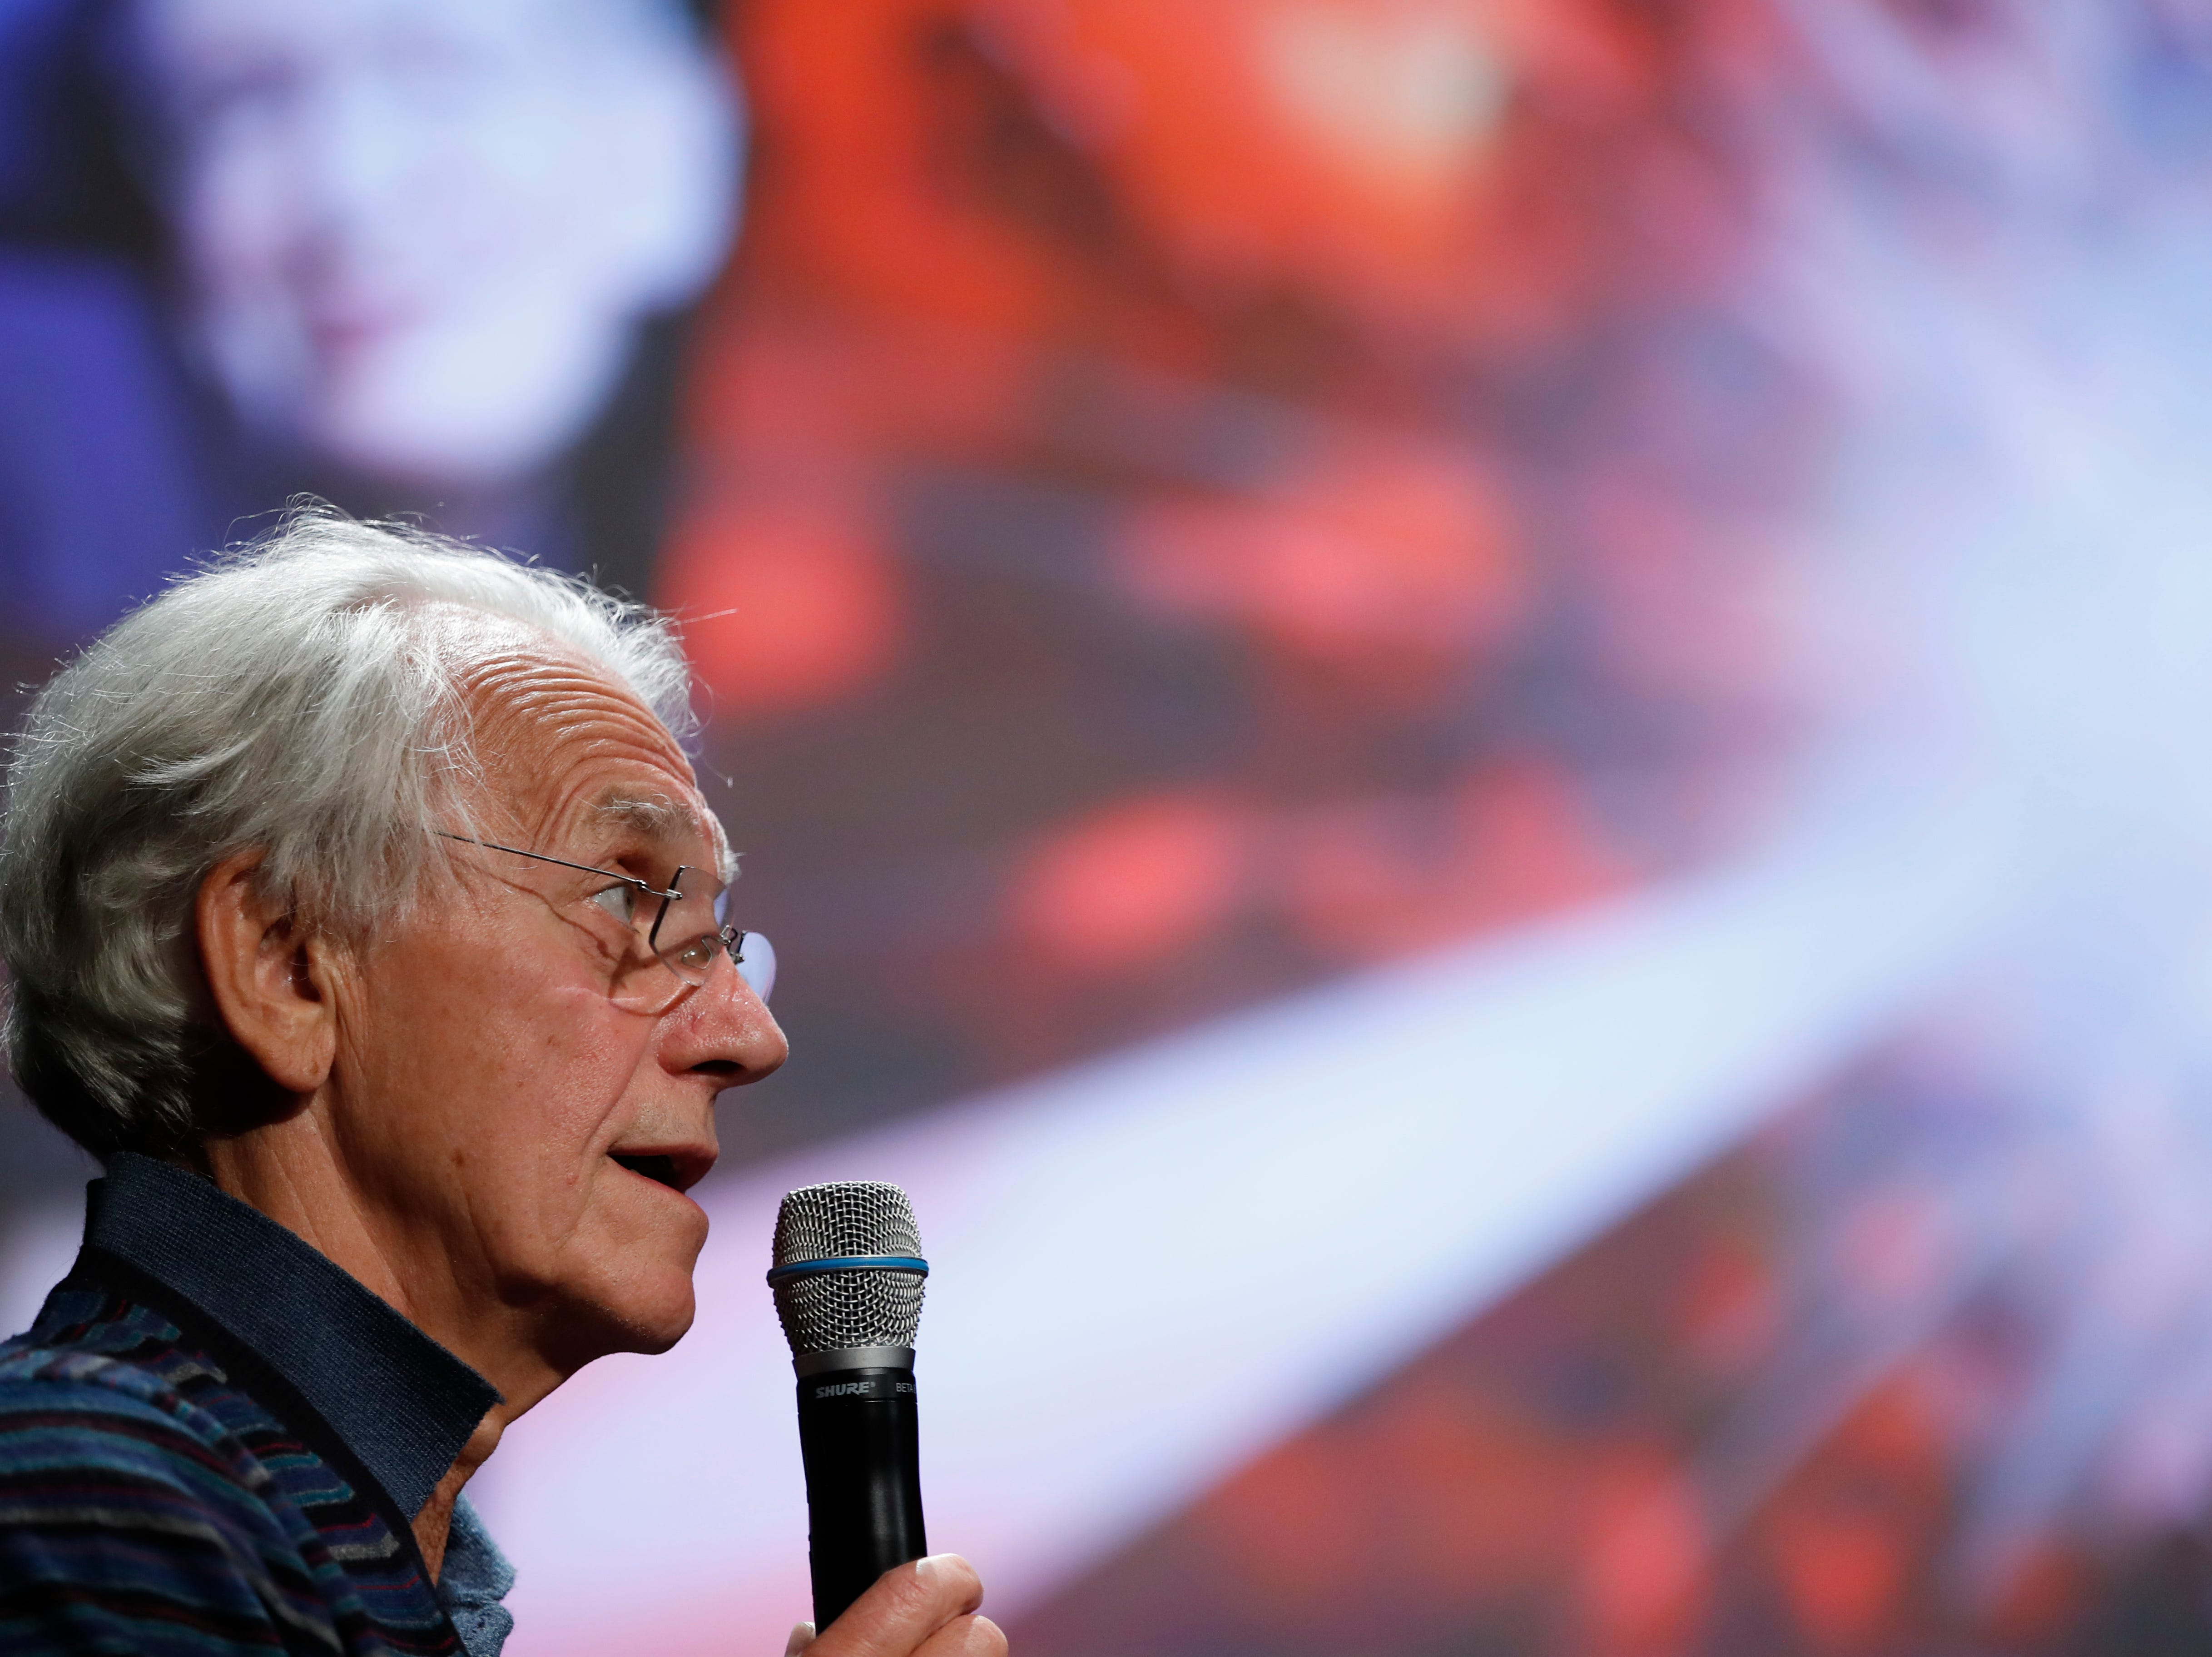 French scientist Gerard Mourou holds a press conference at the Ecole Polytechnique in Palaiseau, south of Paris, Tuesday, Oct. 2, 2018. Three scientists from the United States, Canada and France won the Nobel Prize in Physics on Tuesday for work with lasers described as revolutionary and bringing science fiction into reality.